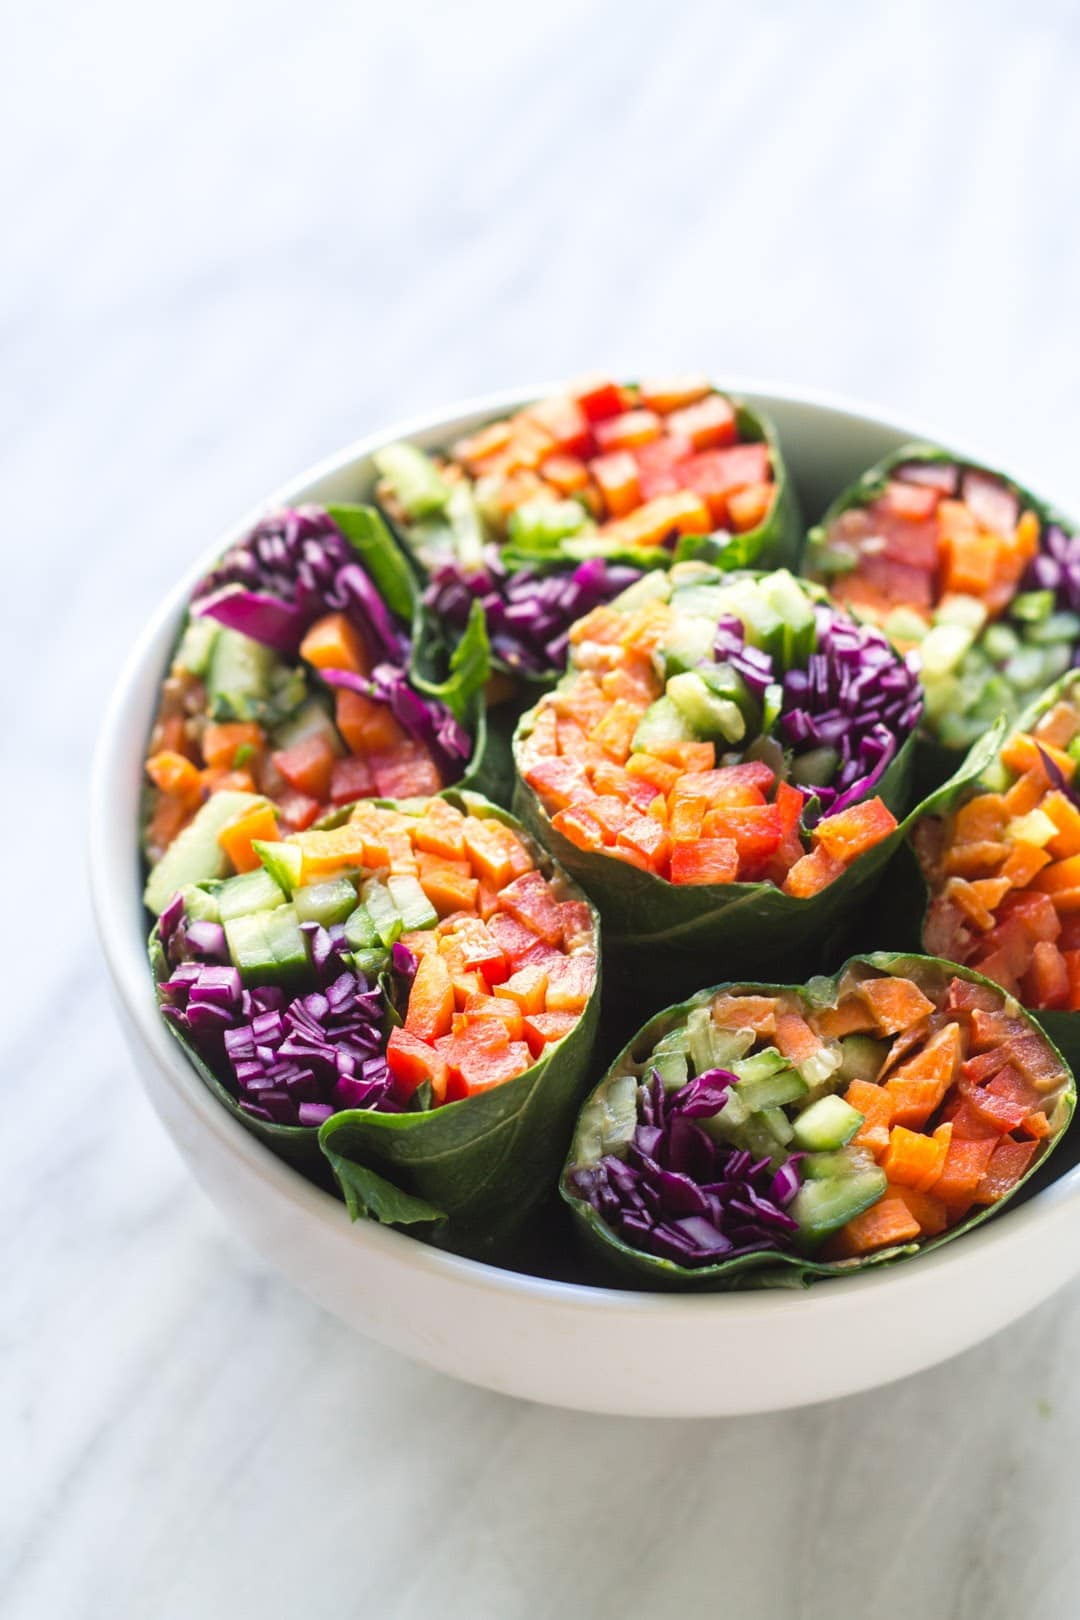 Bowl of Low FODMAP Rainbow Wraps